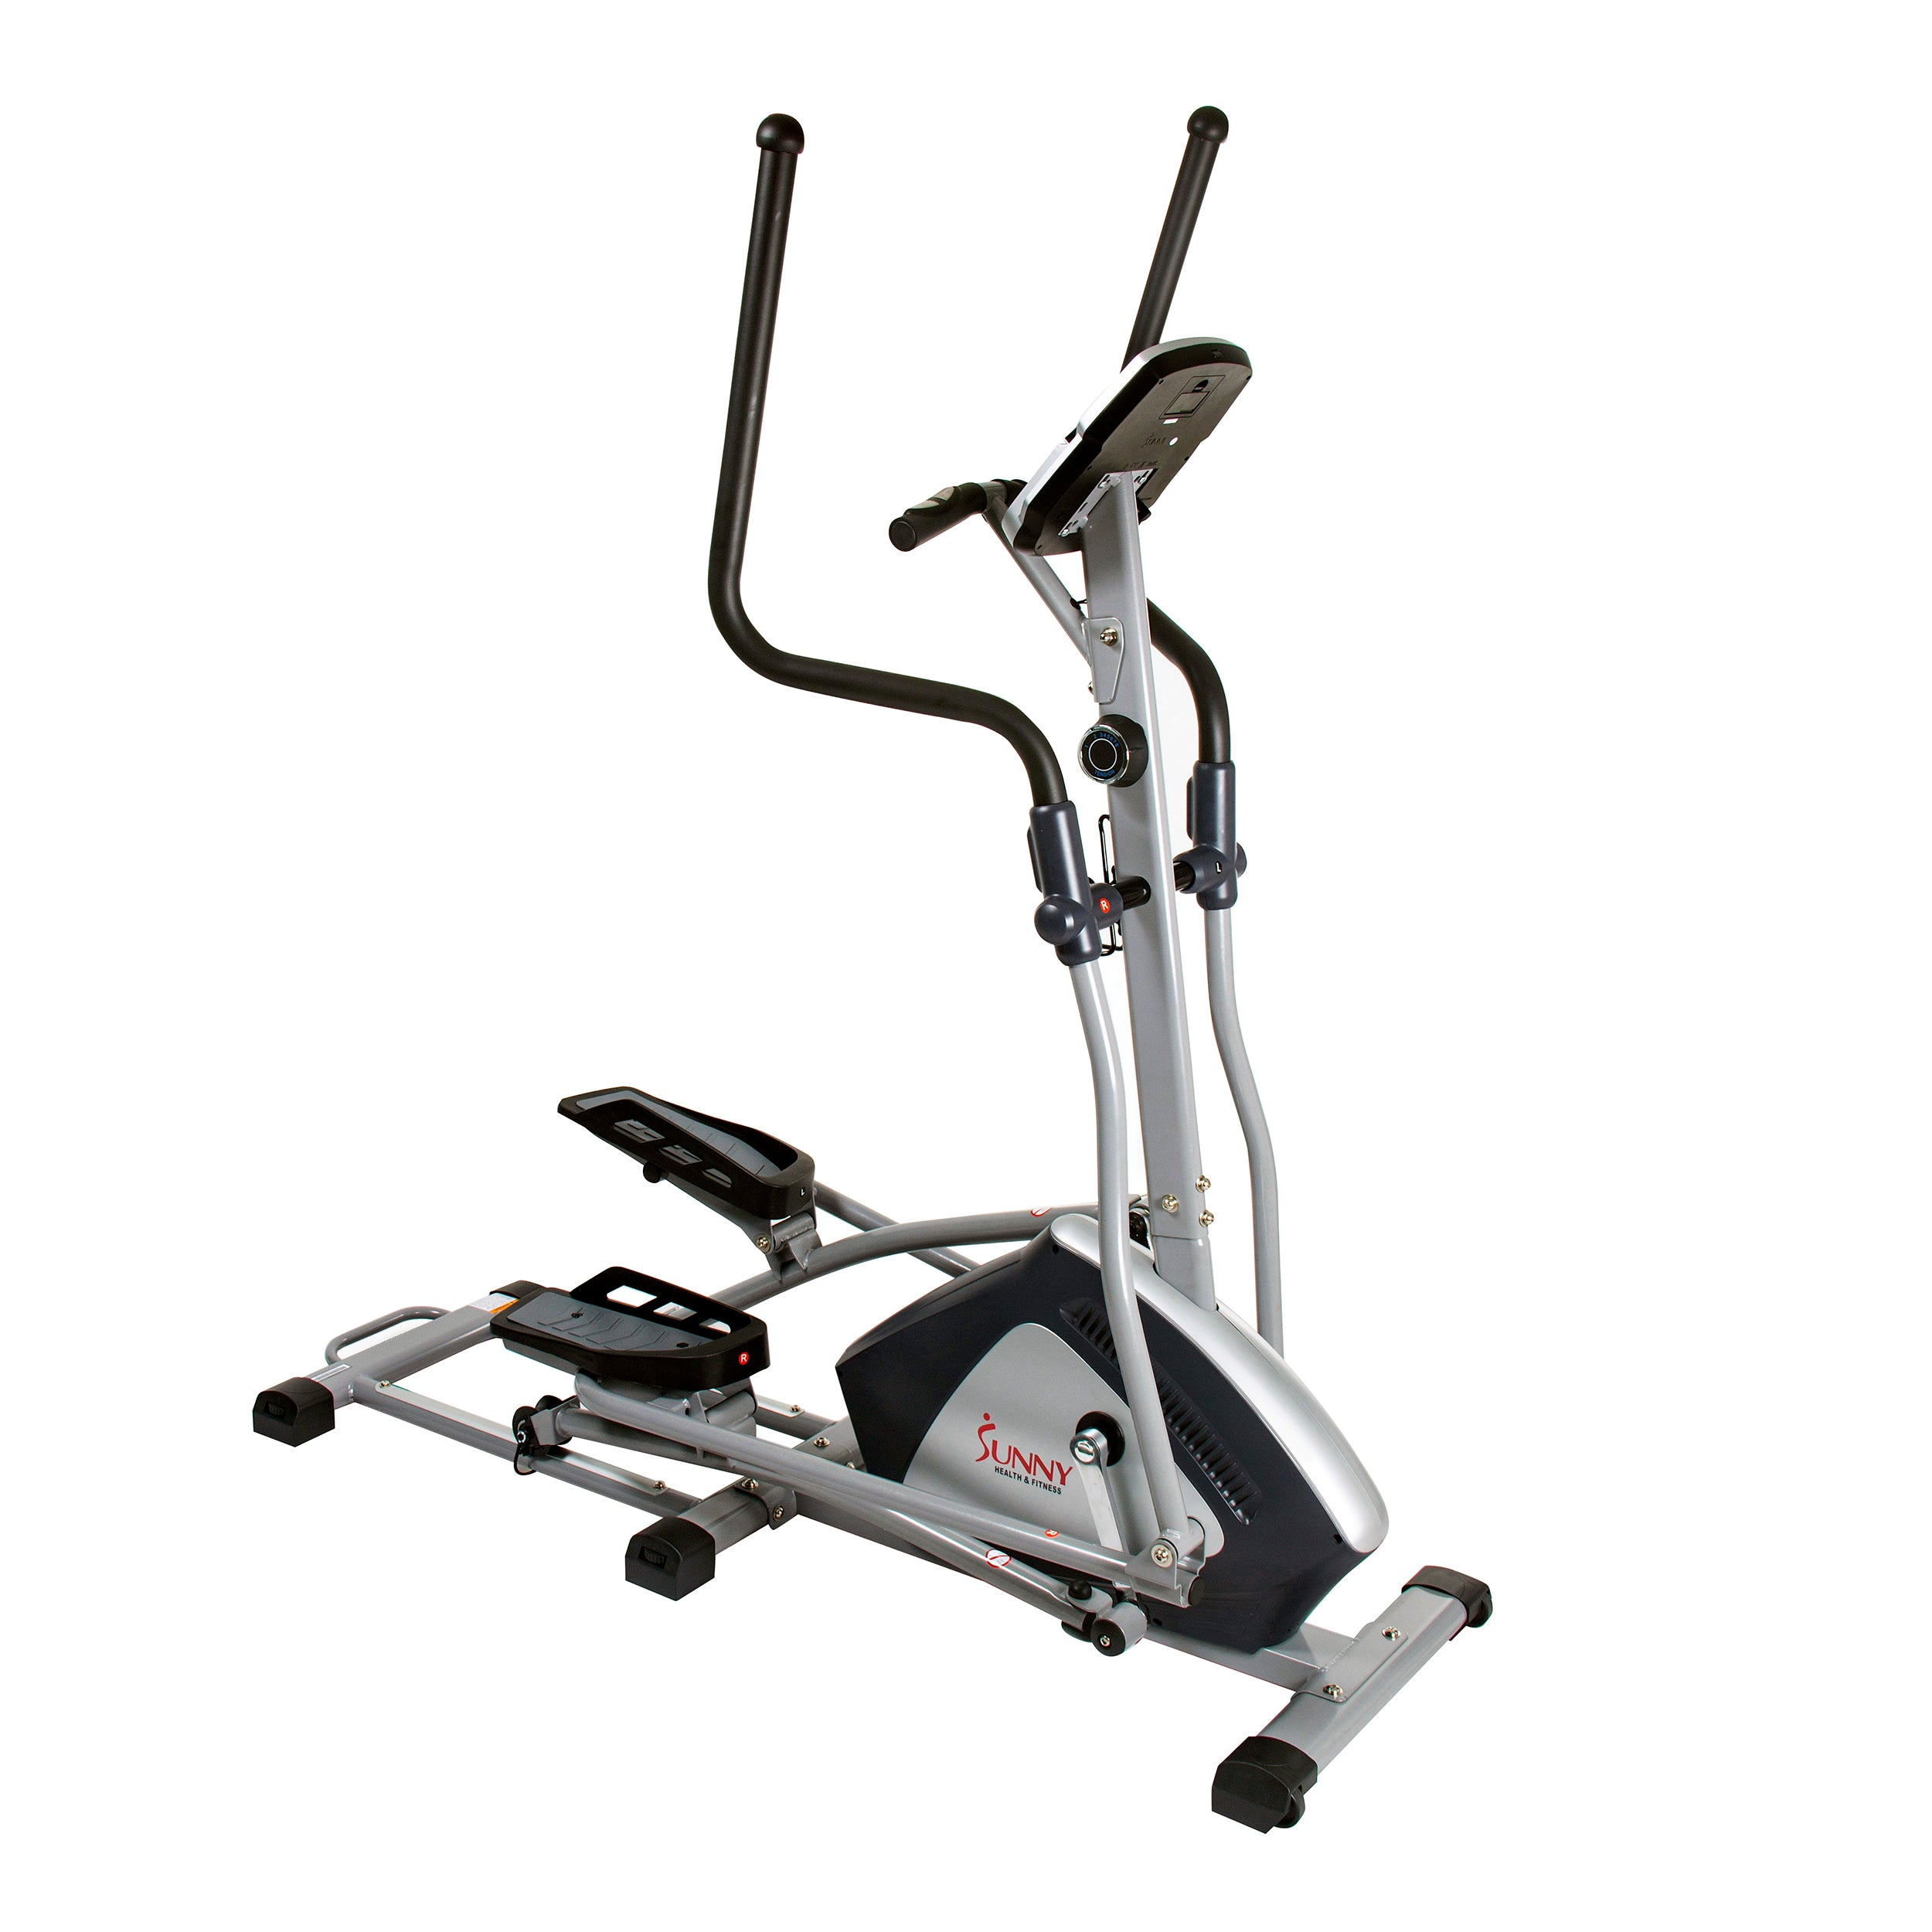 sunny-health-fitness-ellipticals-endurance-zone-cross-trainer-elliptical-SF-E3957-front-drive